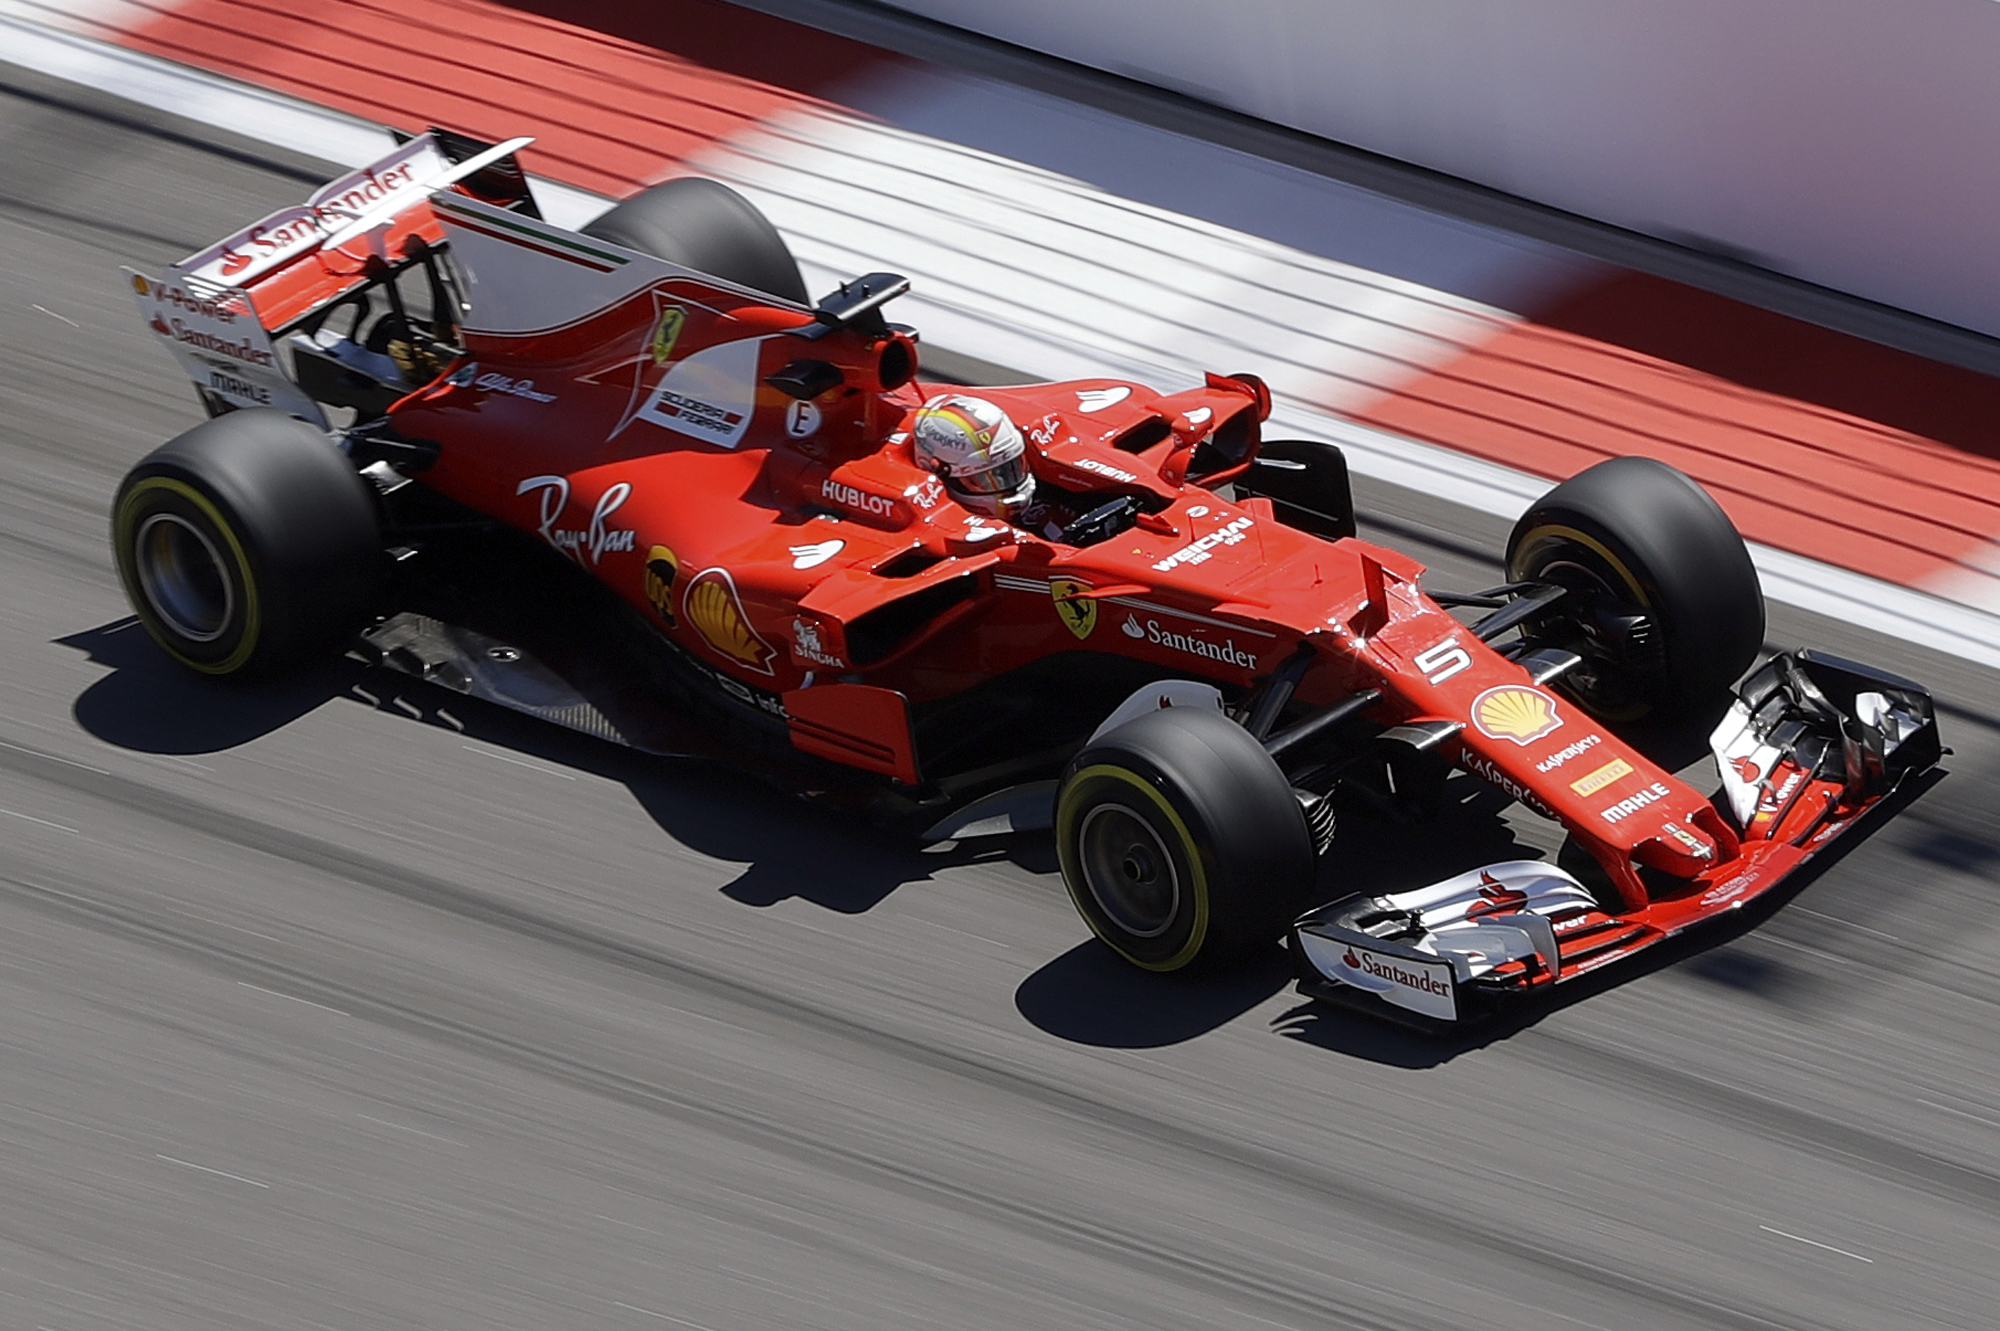 Ferrari driver Sebastian Vettel of Germany steers his car during the first practice session ahead the Formula One Russian Grand Prix at the 'Sochi Autodrom' circuit, in Sochi, Russia, Friday, April. 28. (AP Photo/Sergei Grits)